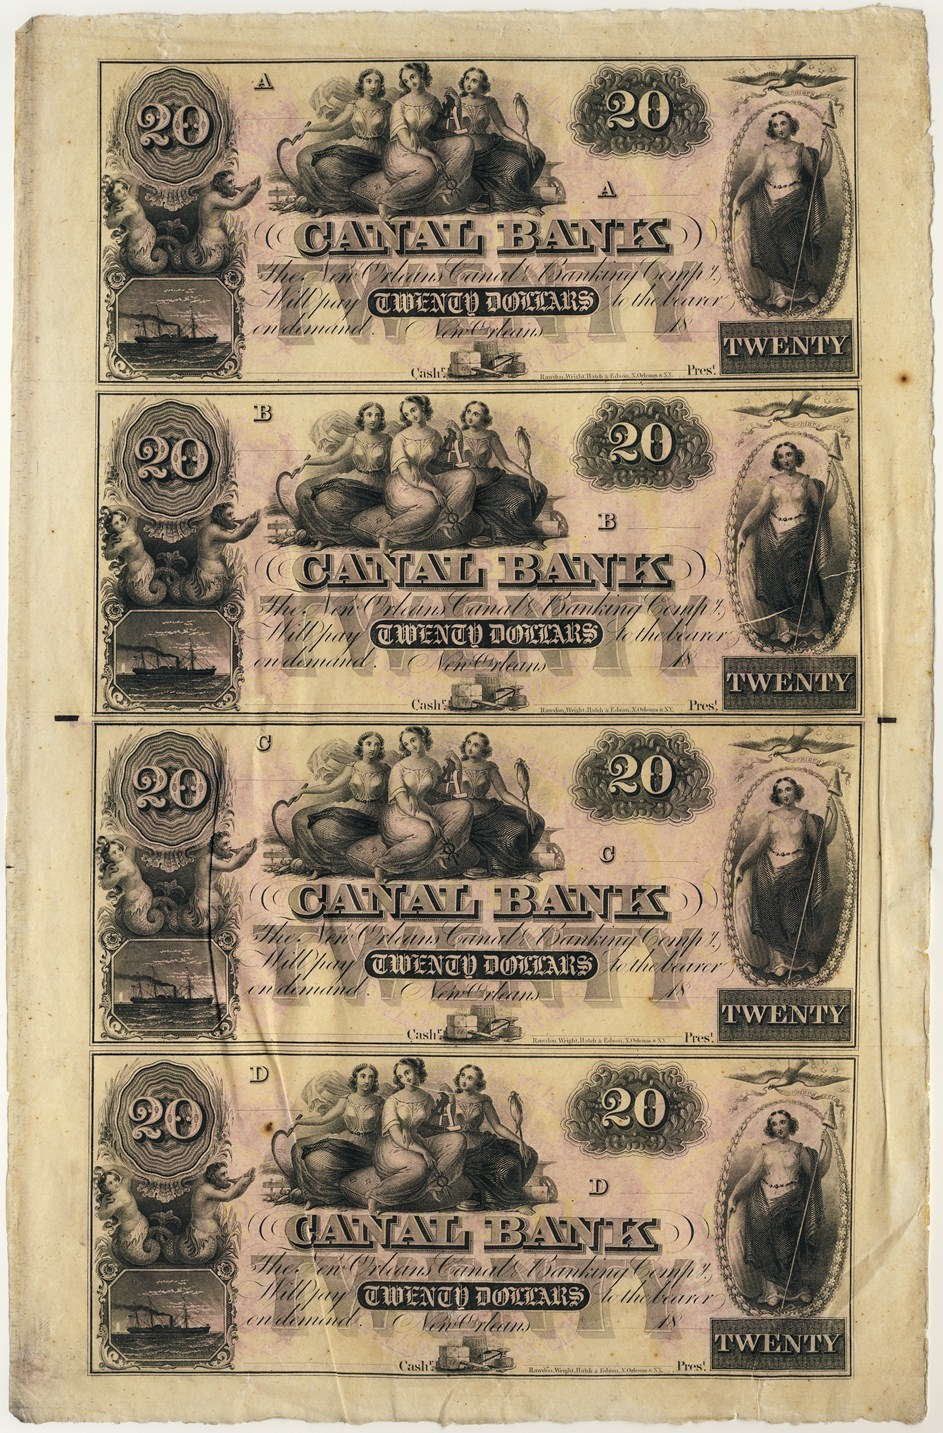 USA - Canal Bank Sheet of Large Size Obsolete Bank Notes: Canal Bank, New Orleans, Louisiana 4 x 20 Dollar 1831-1860 Very Fine 